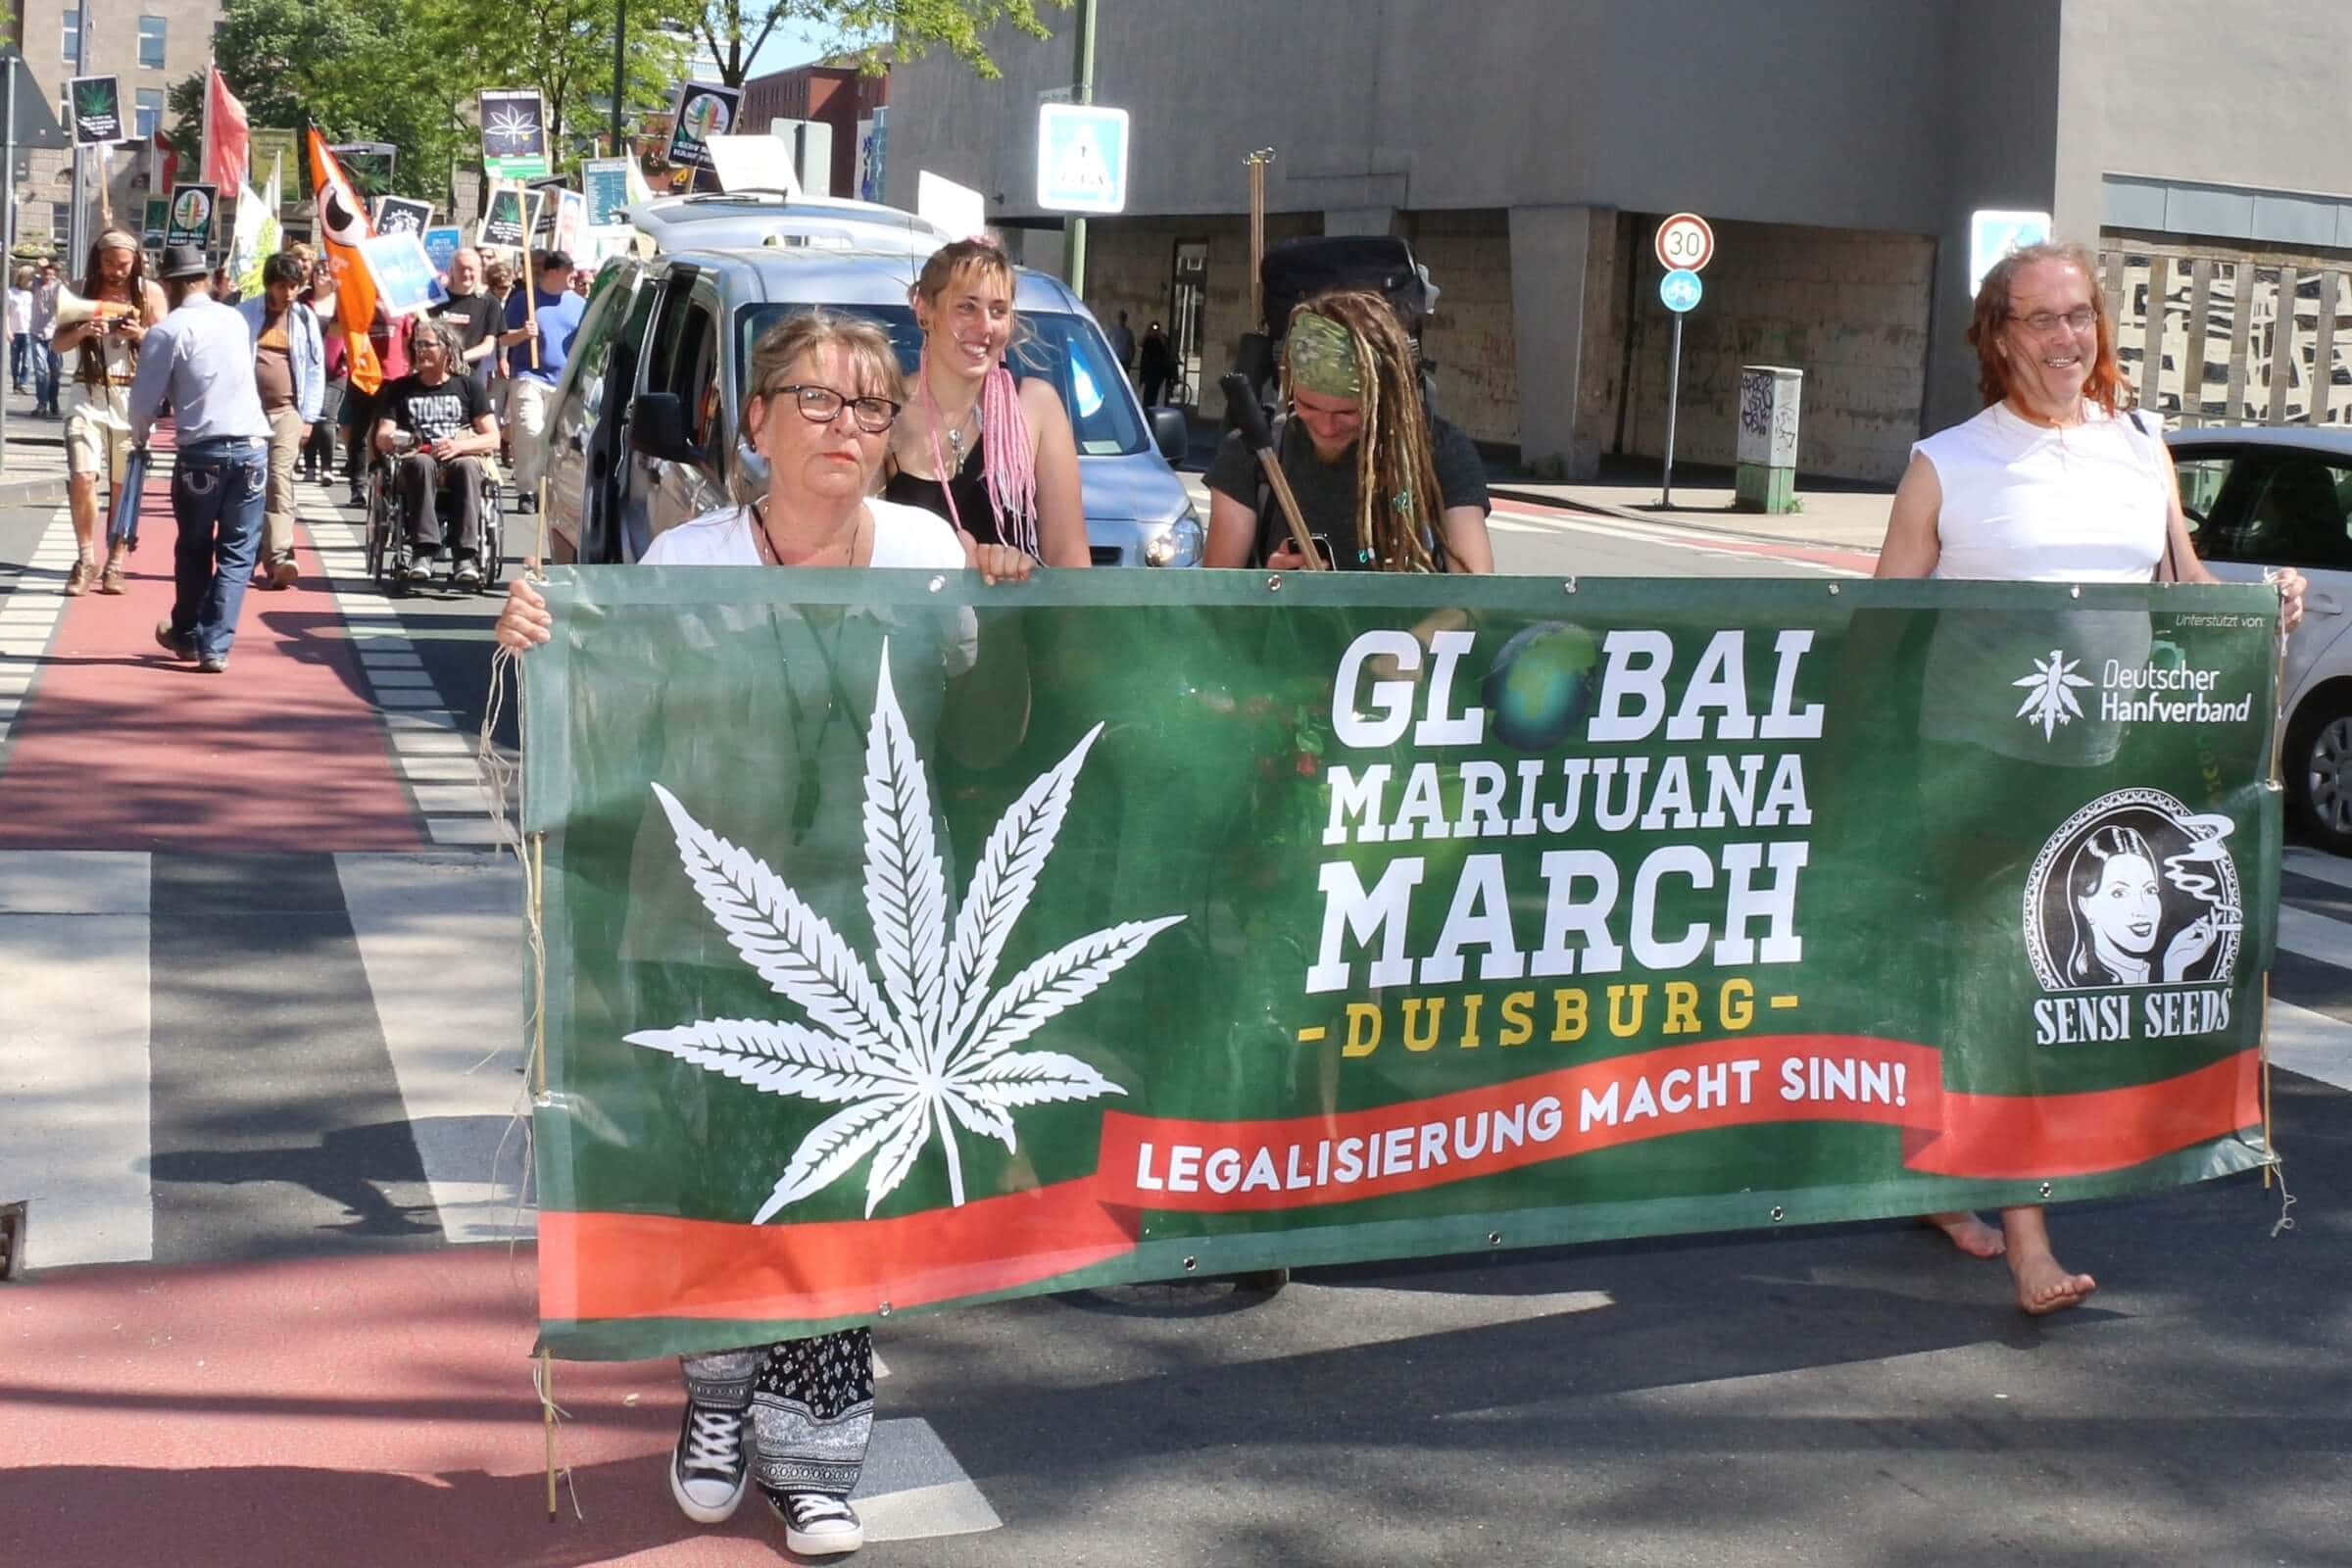 Global Marijuana March Duisburg